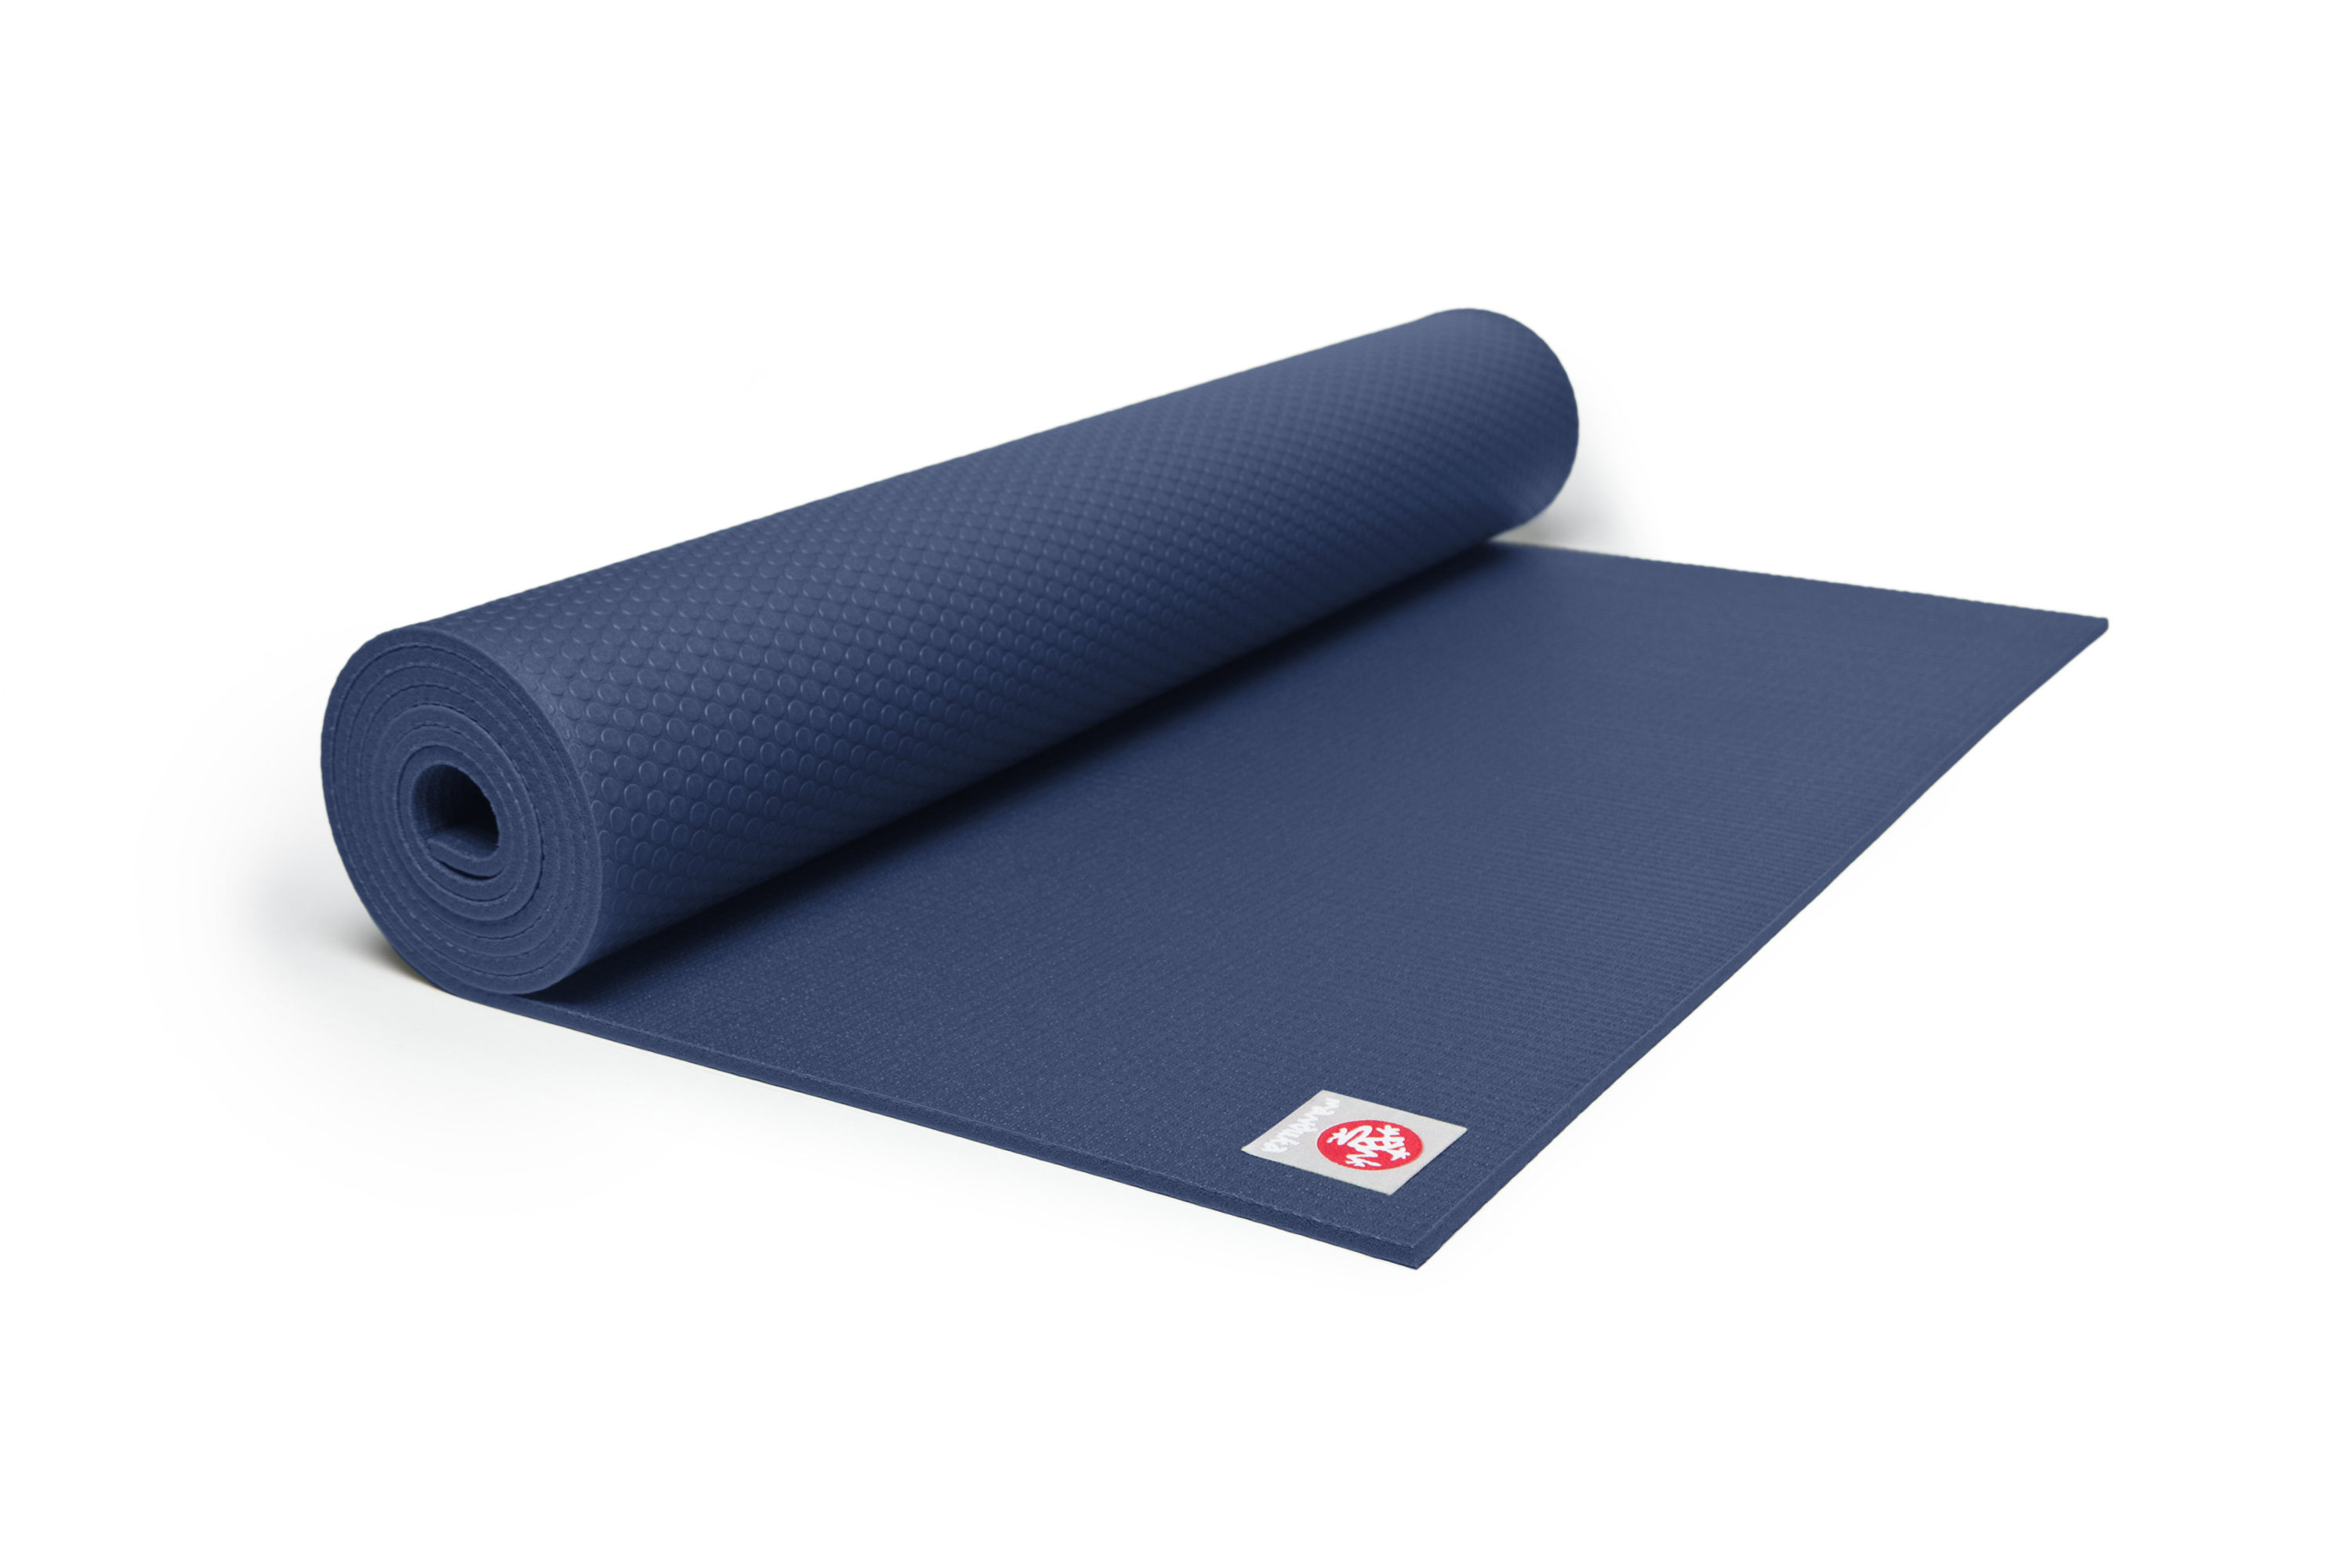 for hot brands unisex towel shop yogarat yoga blue by mat sss mats